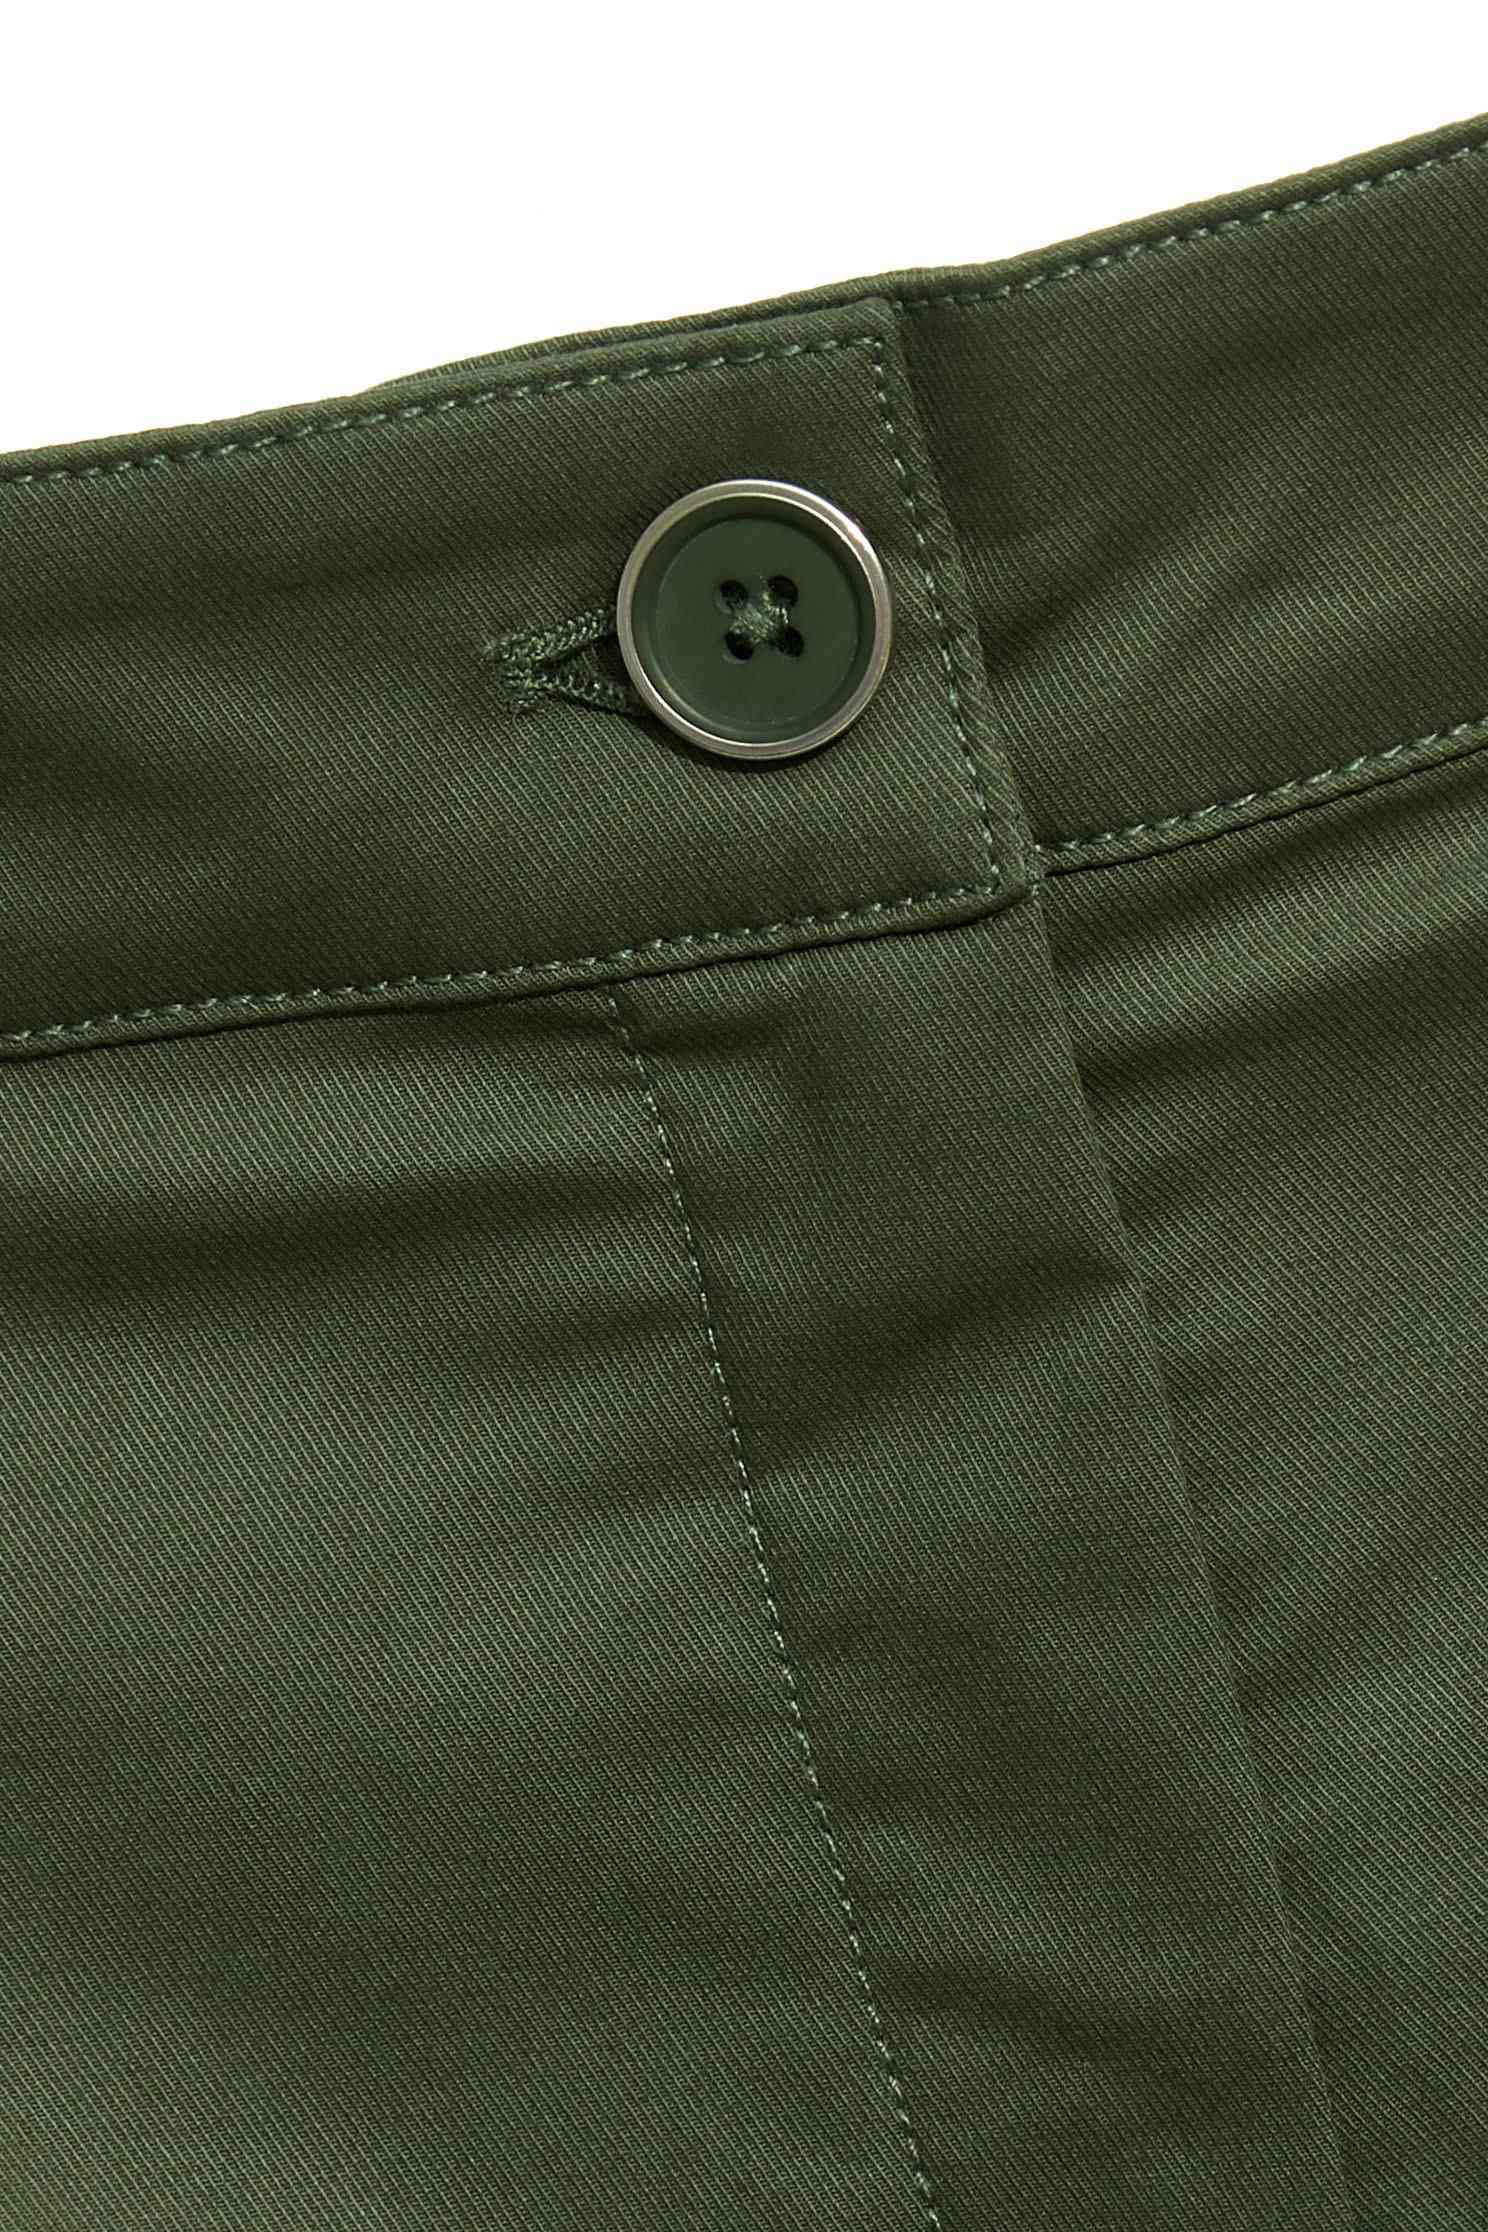 Olive green shorts,shorts,belt